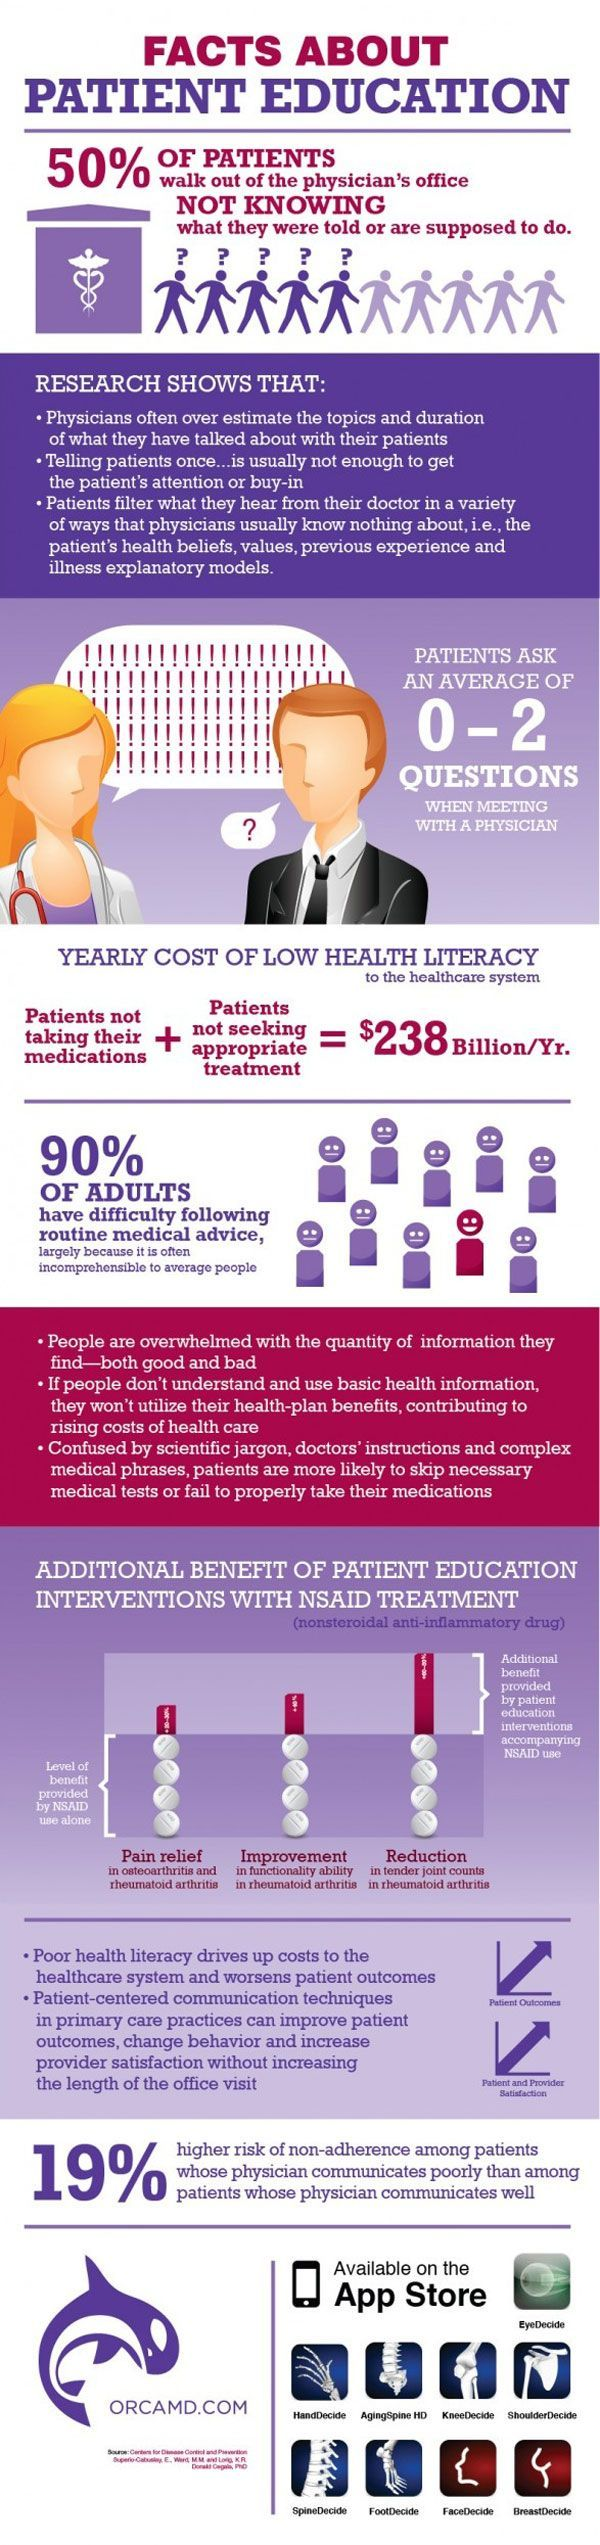 facts about patient education